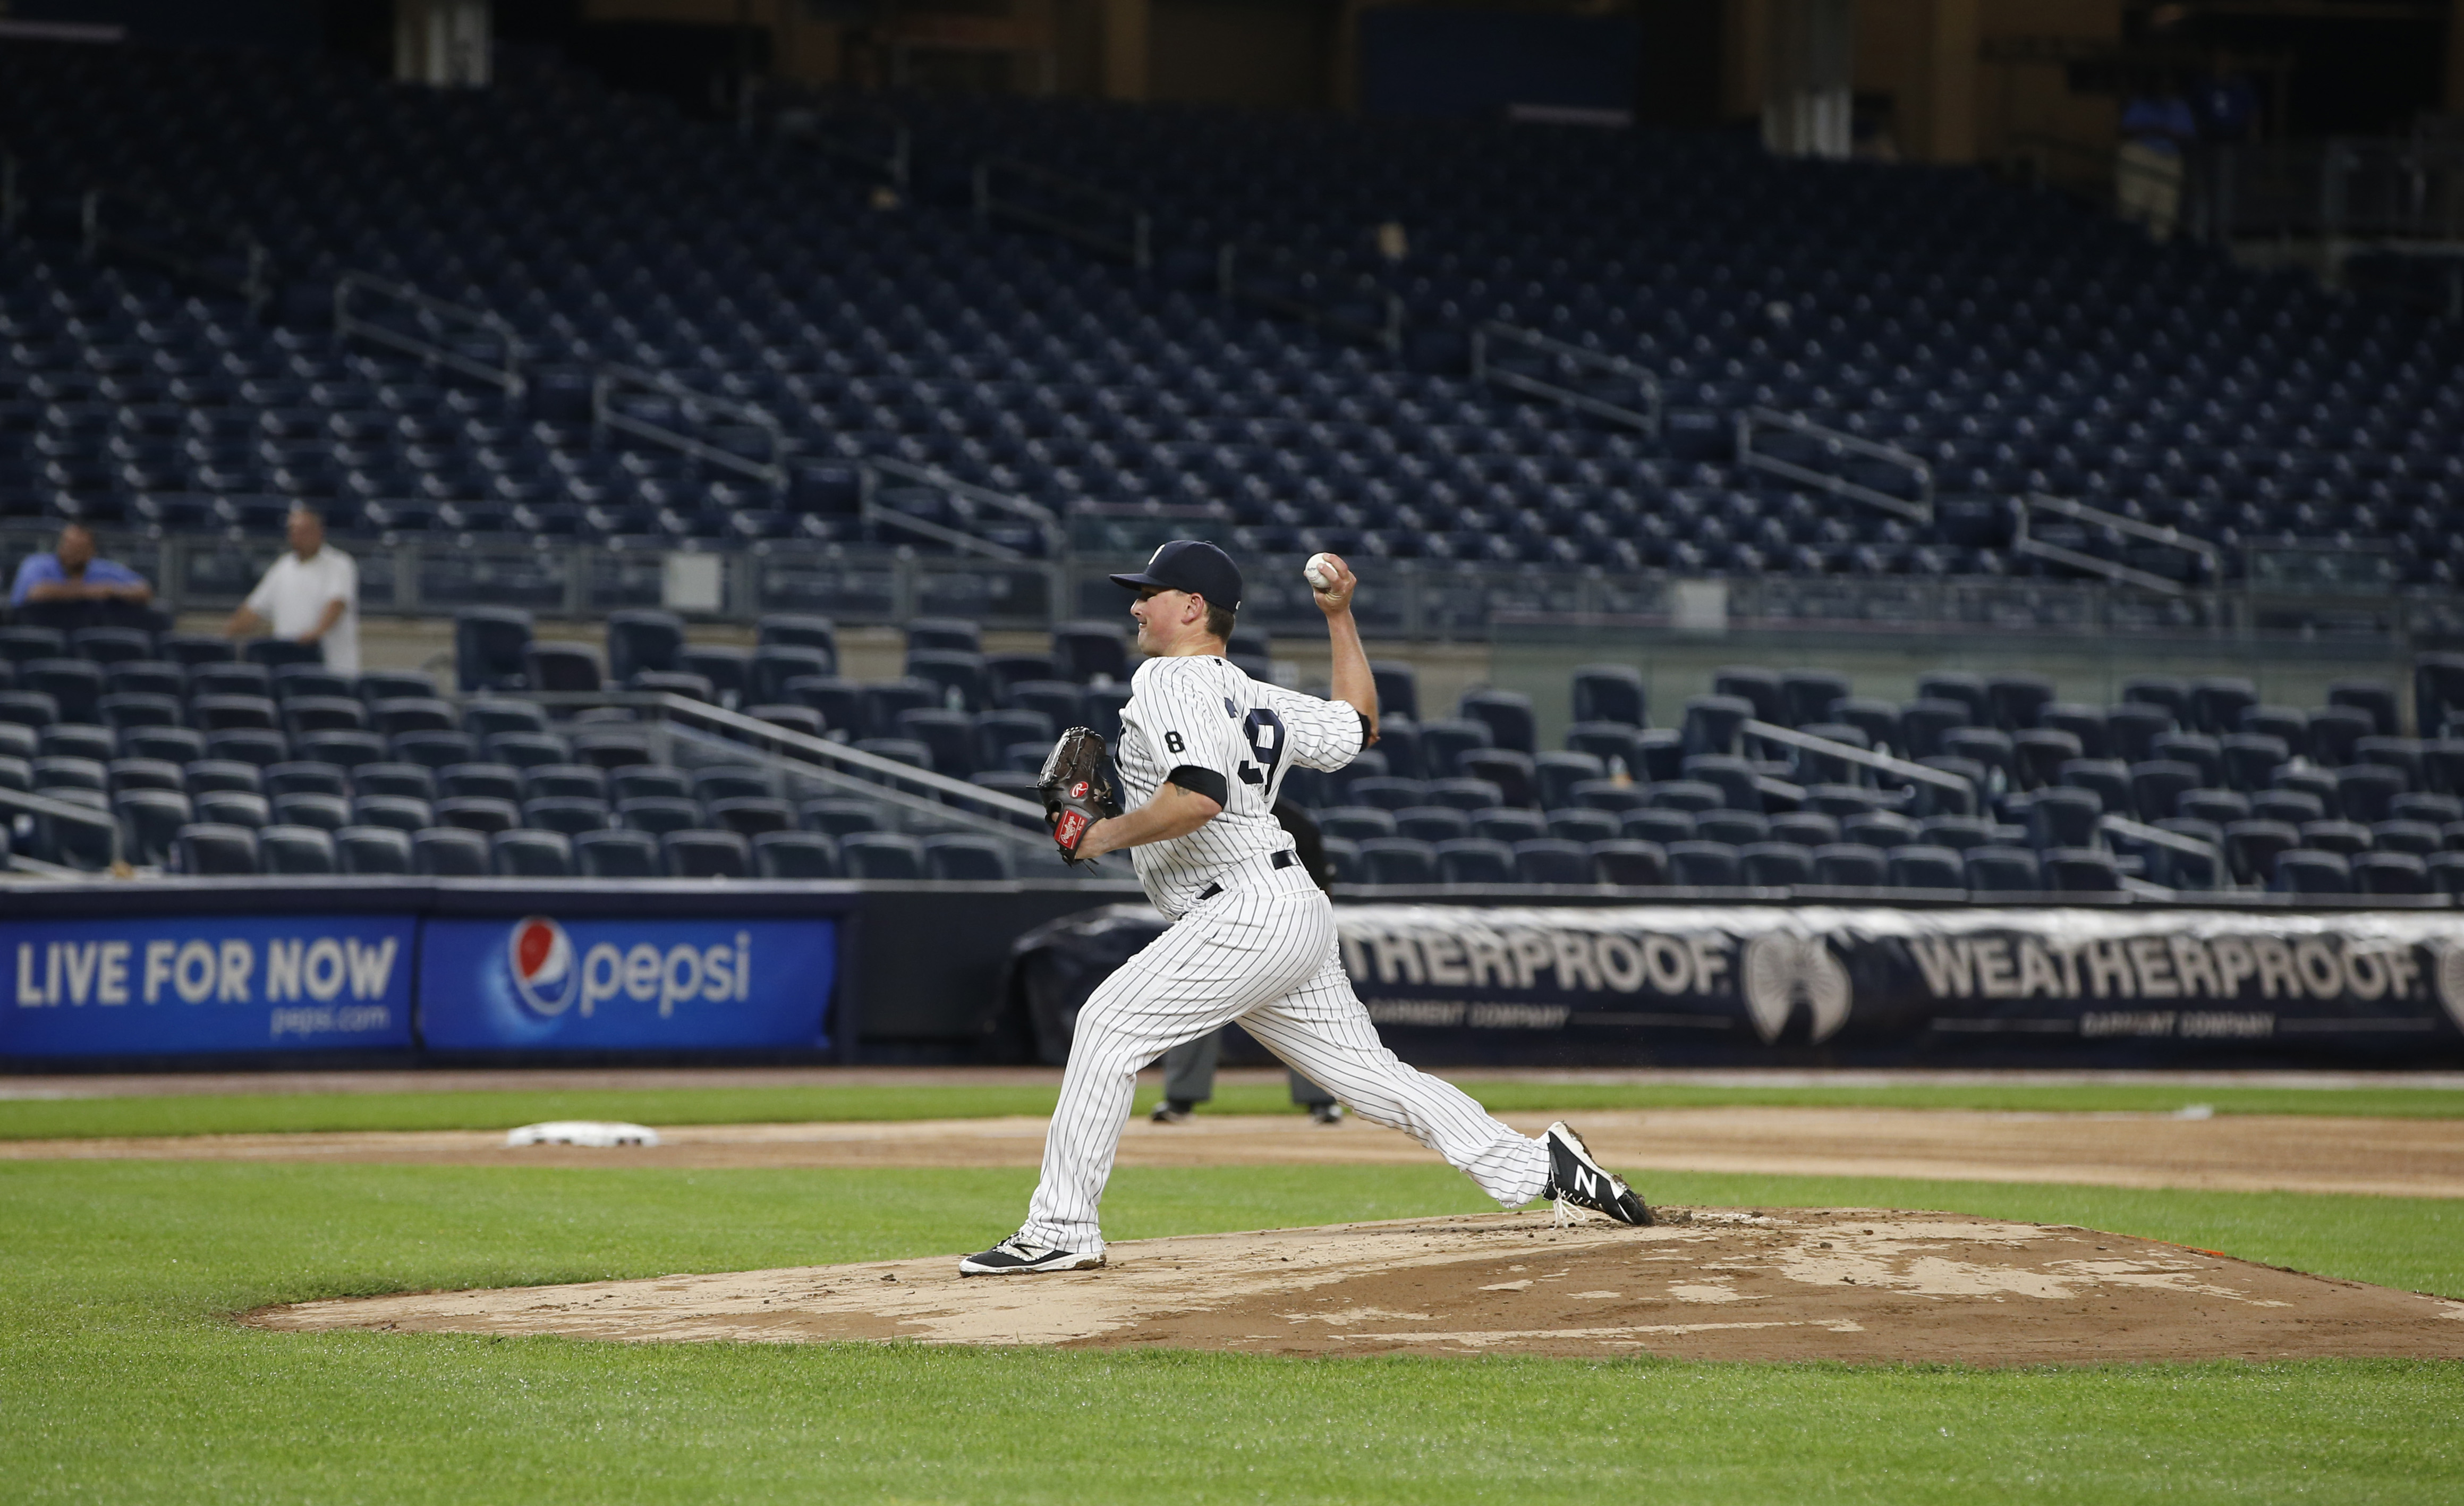 Rainy game ends at 2 44 a m Yankees lose to Rangers in 9th